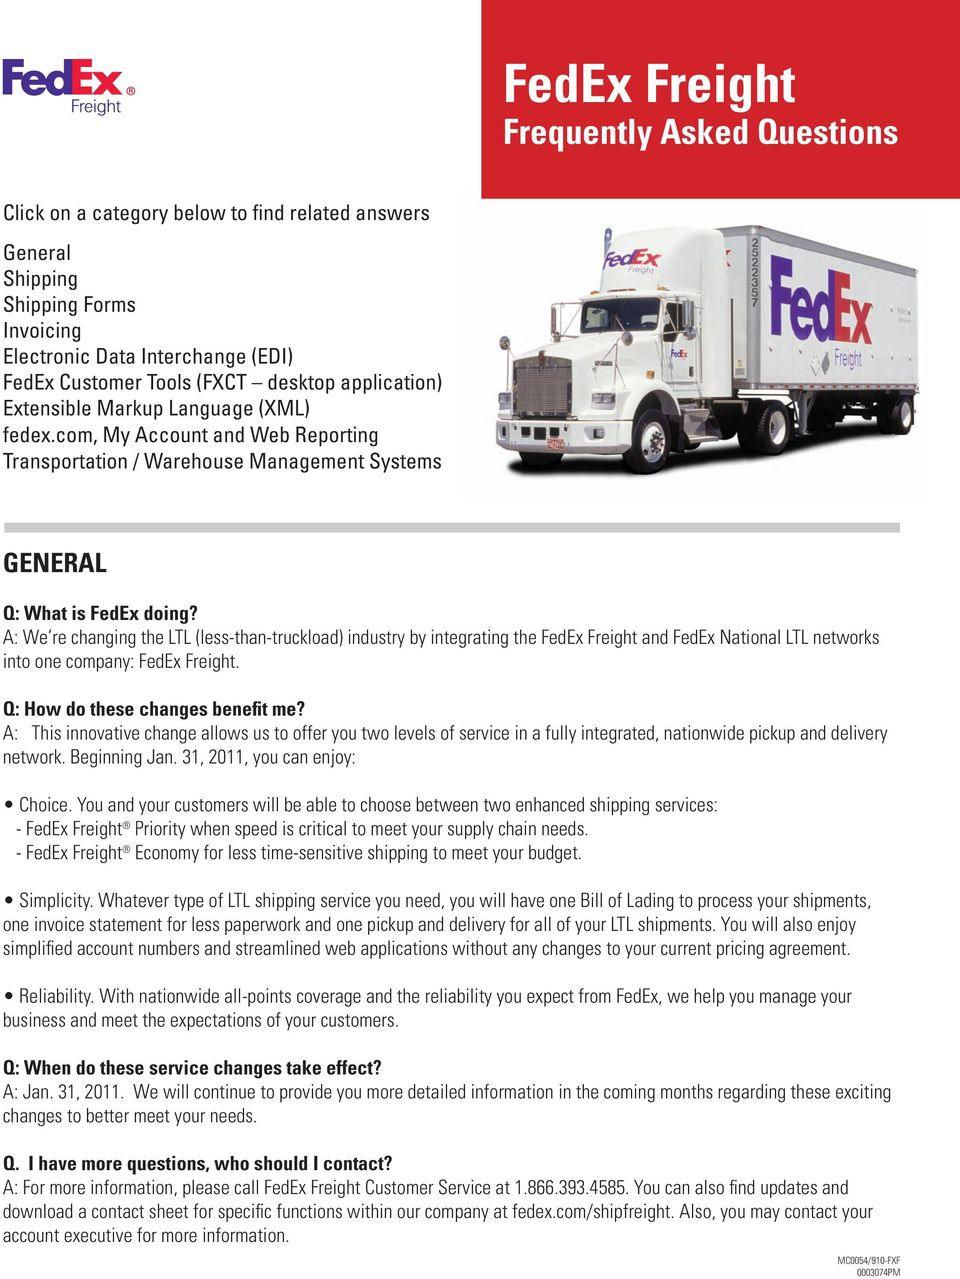 Fedex Freight Frequently Asked Questions Pdf